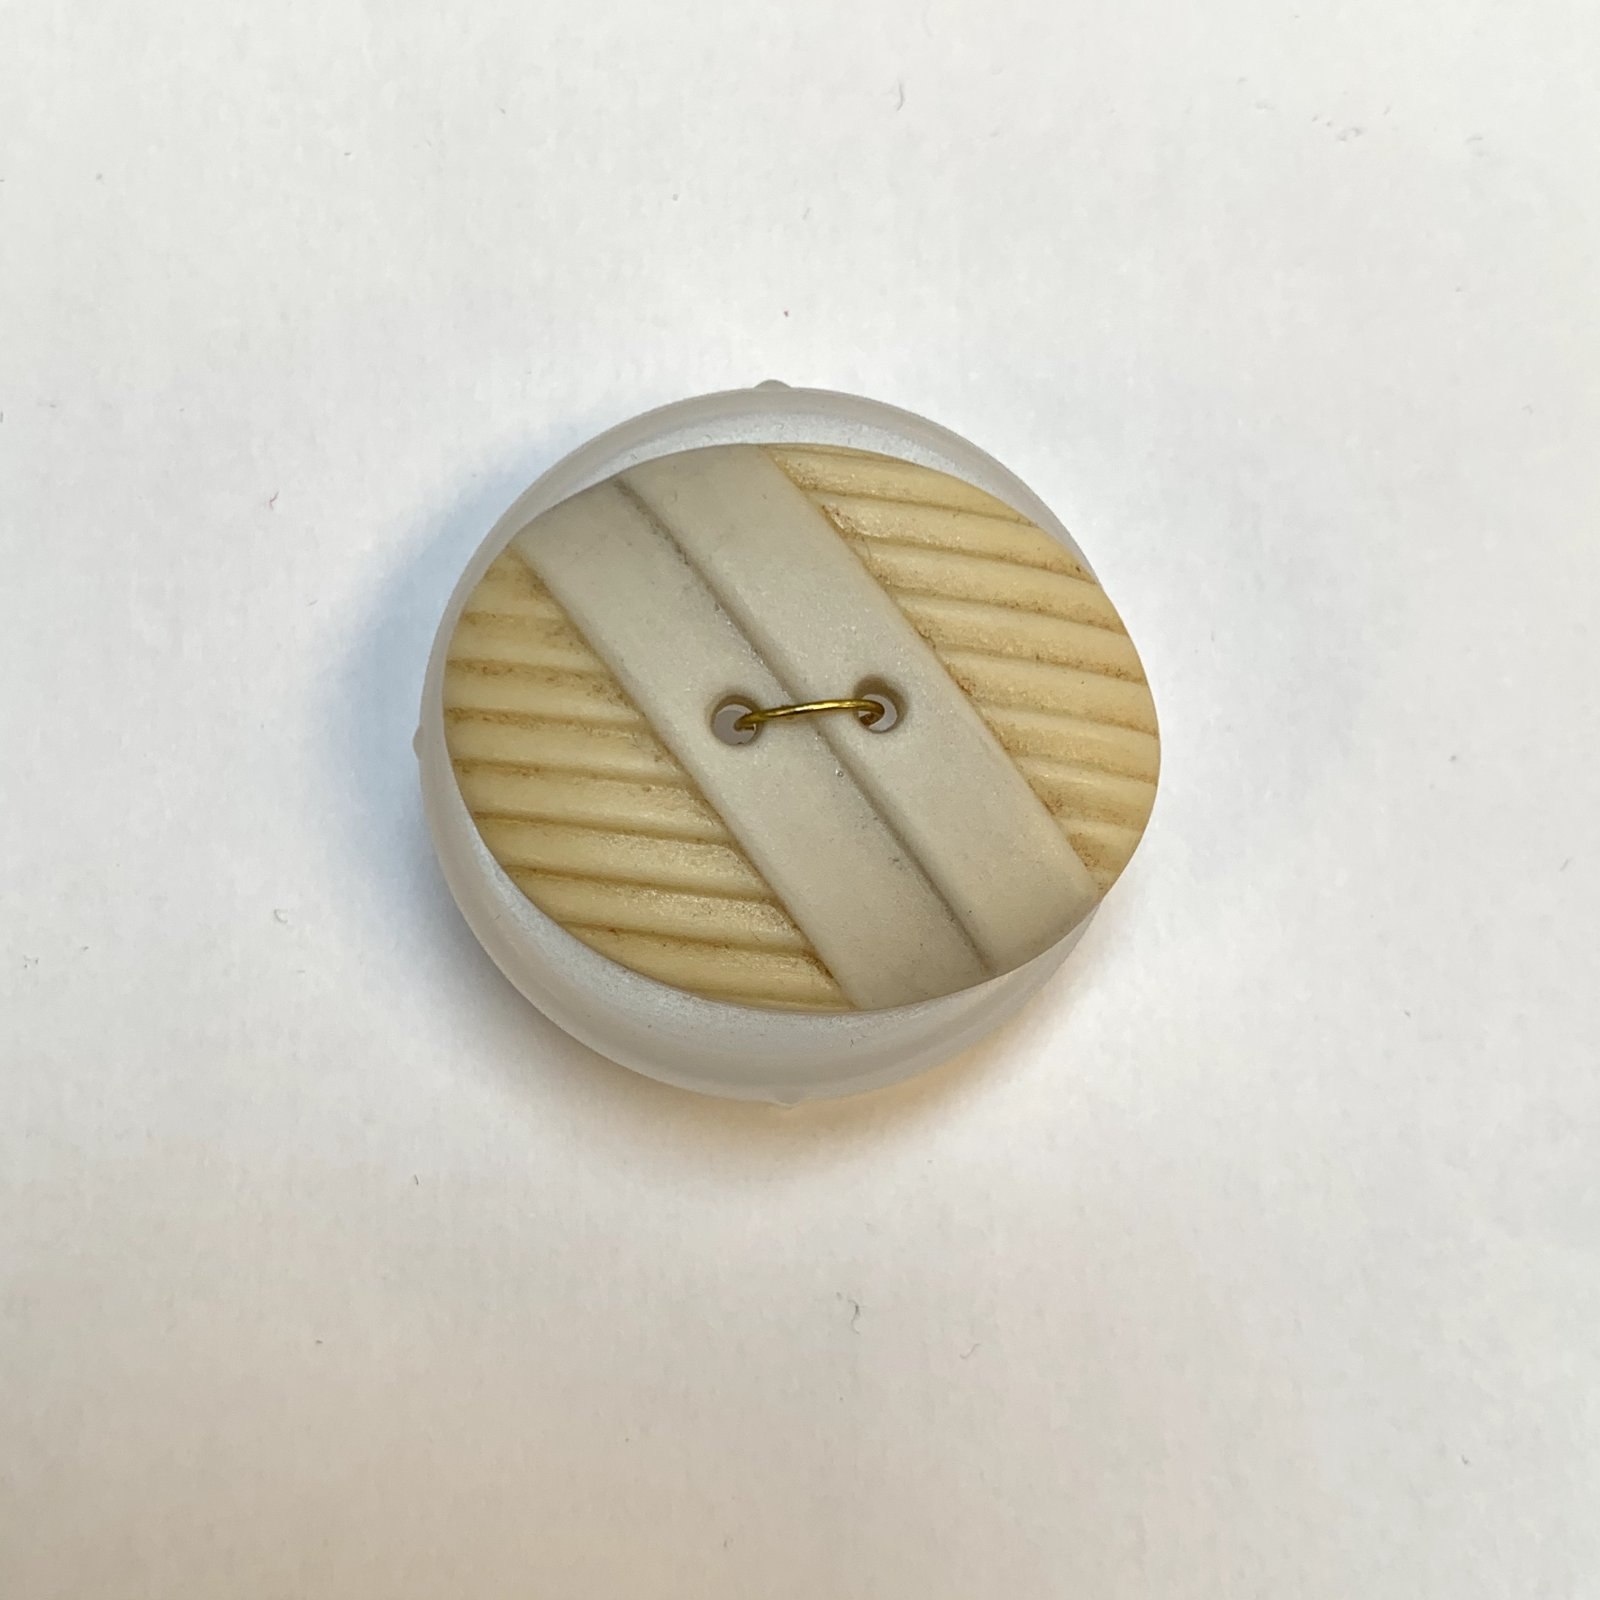 Tan Oval Porcelain Button 1 1/2 Inch